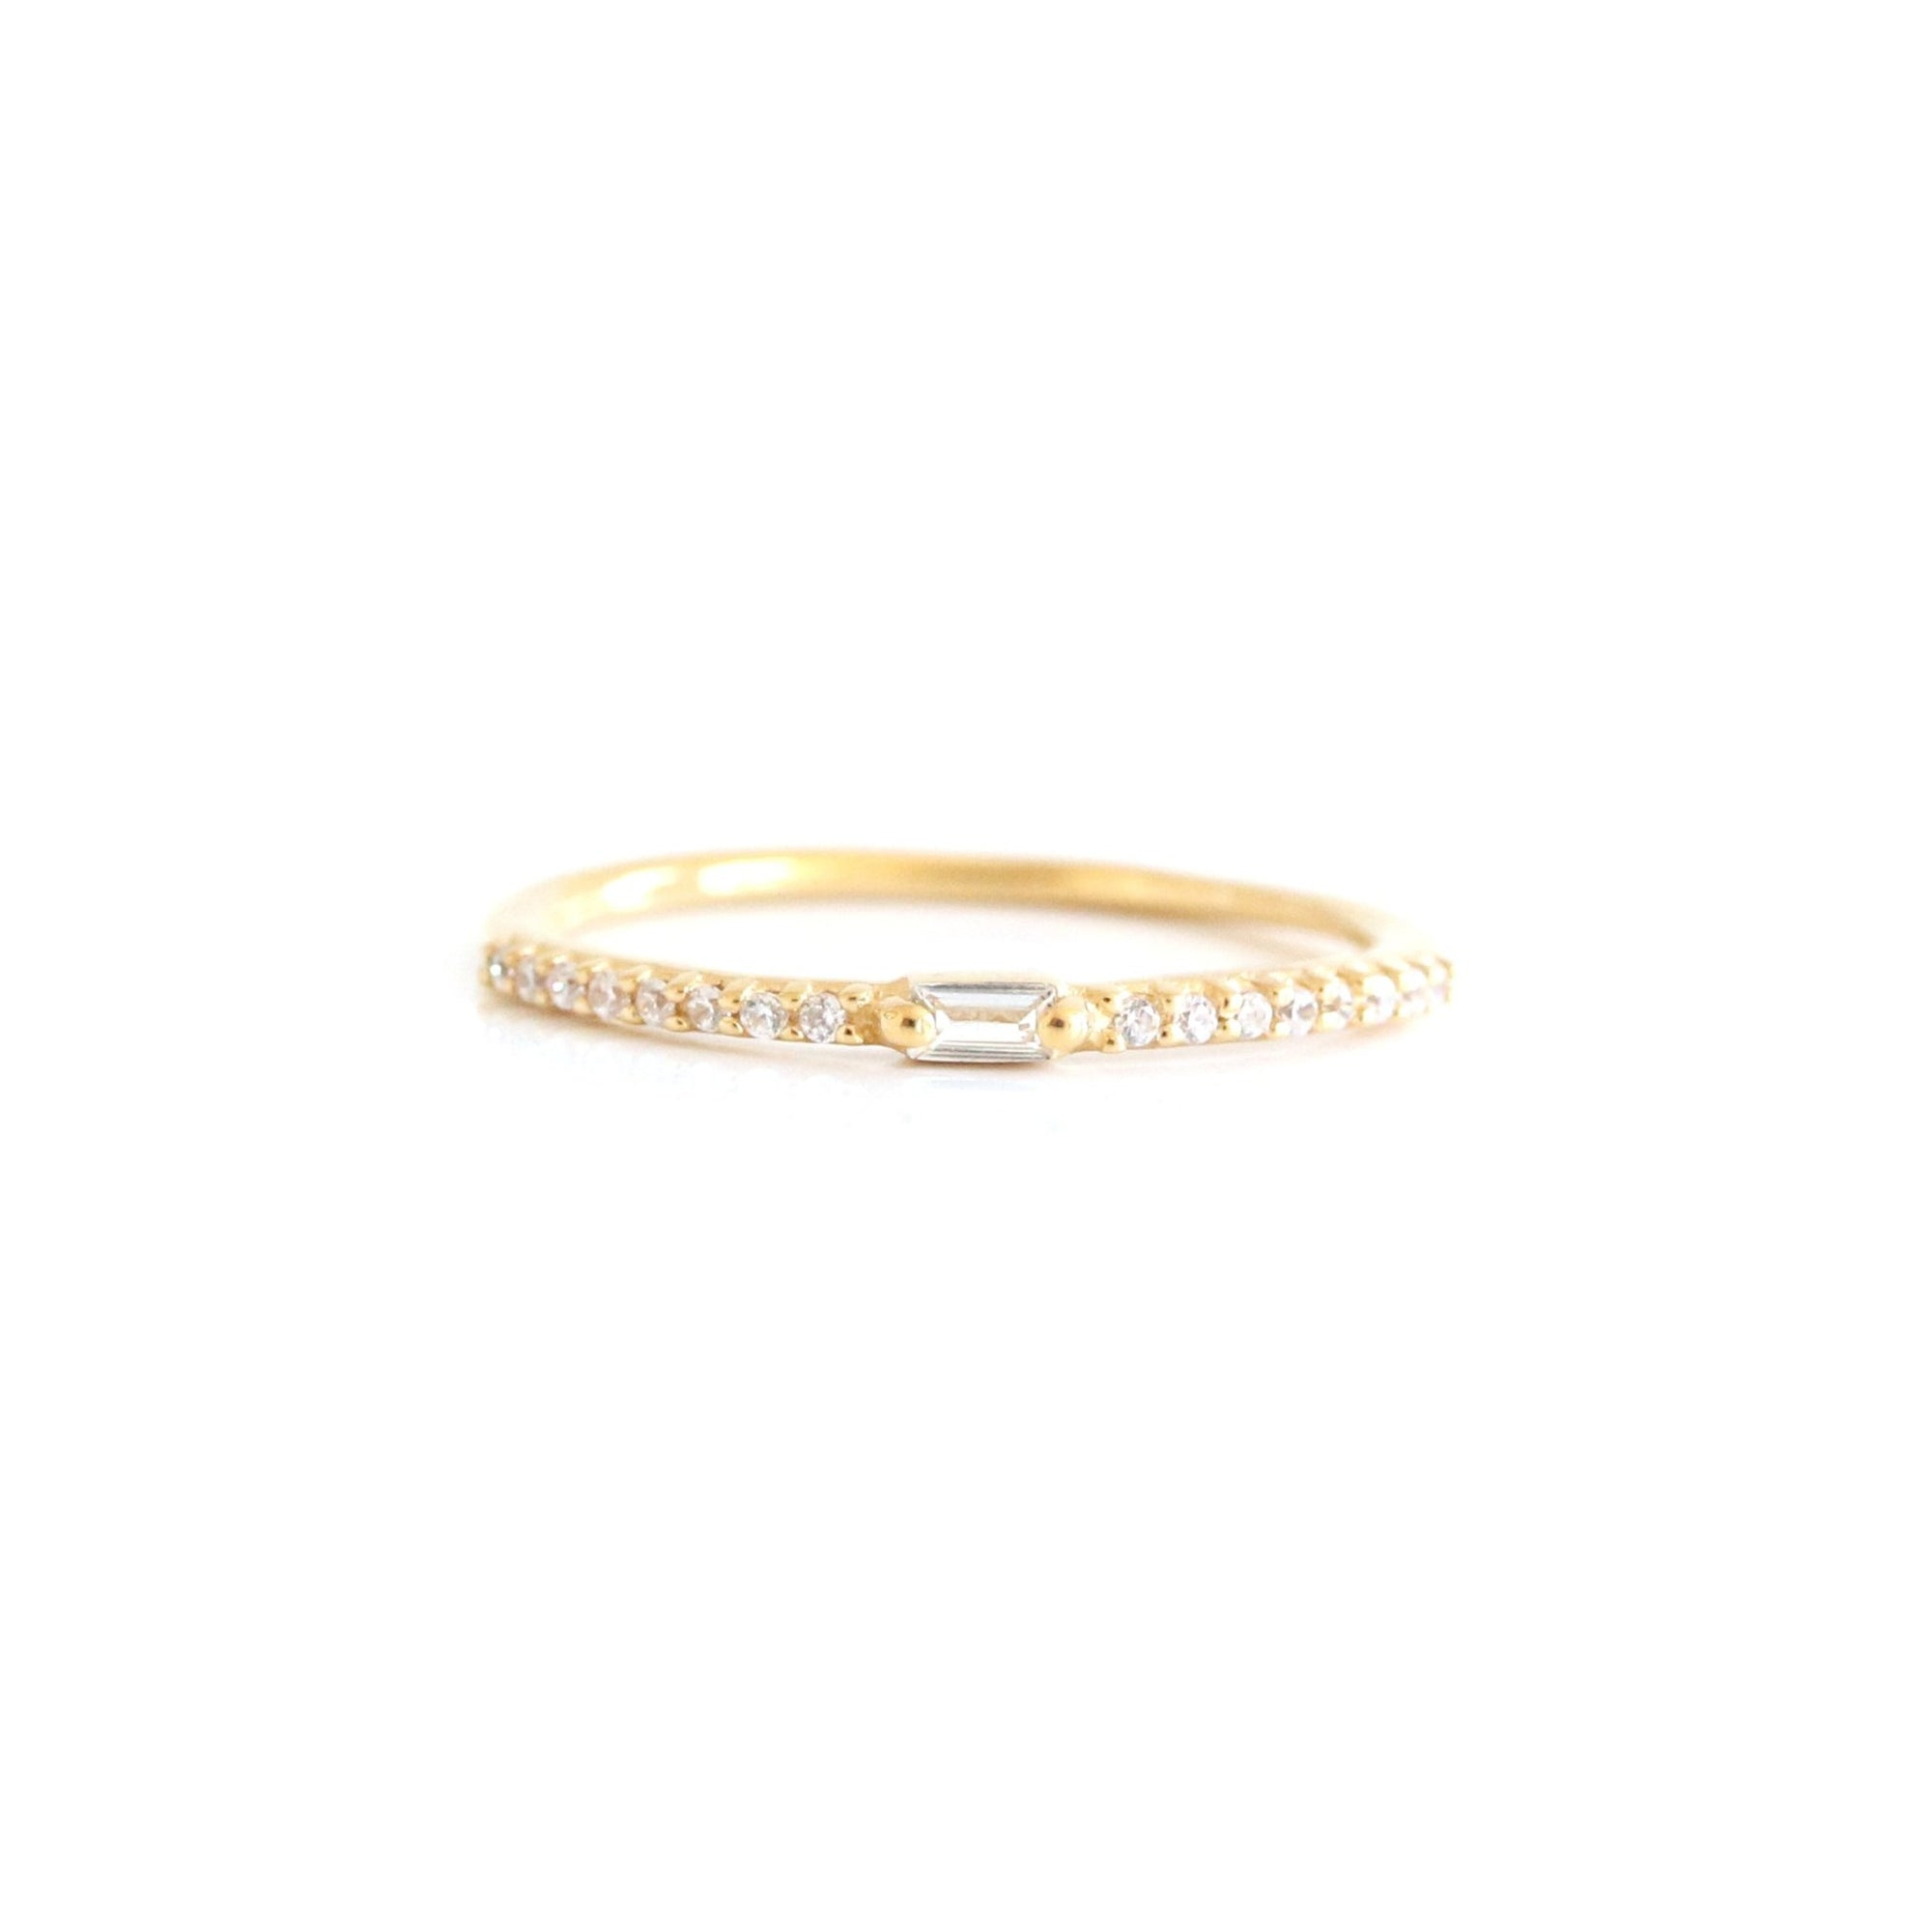 Loyal Prism Stacking Ring - White Topaz & Gold - SO PRETTY CARA COTTER